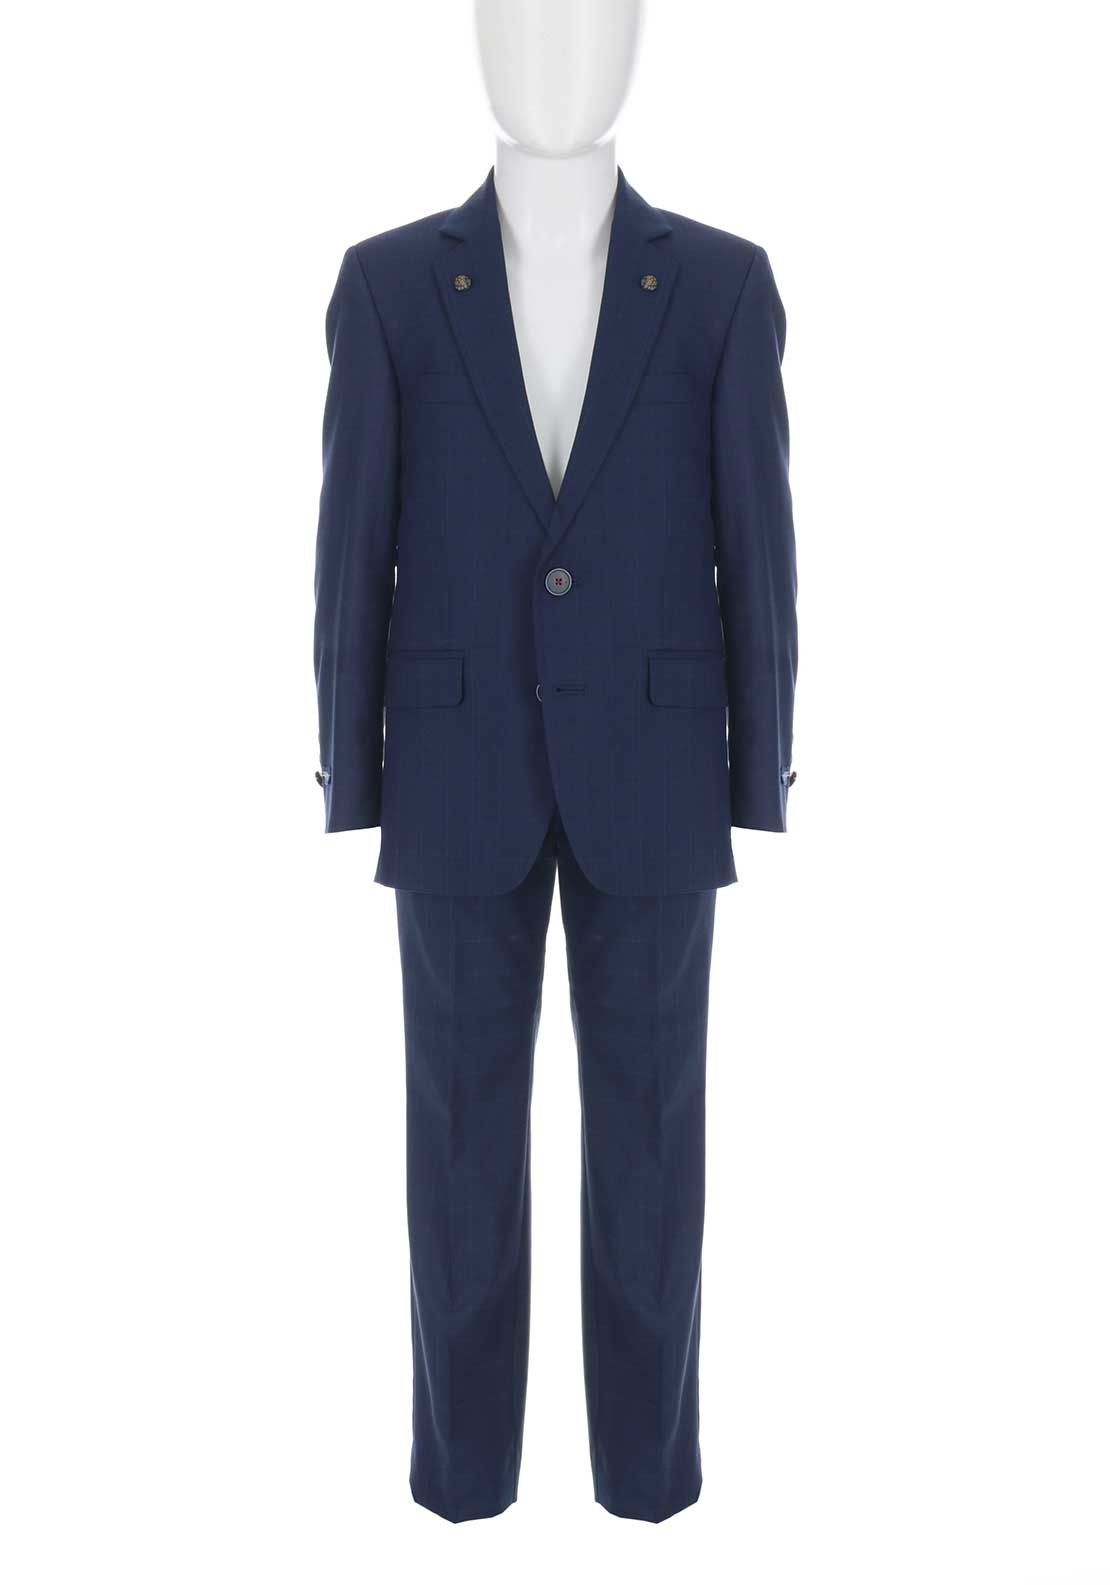 1880 Club Boys Chequered Two Piece Suit, Navy